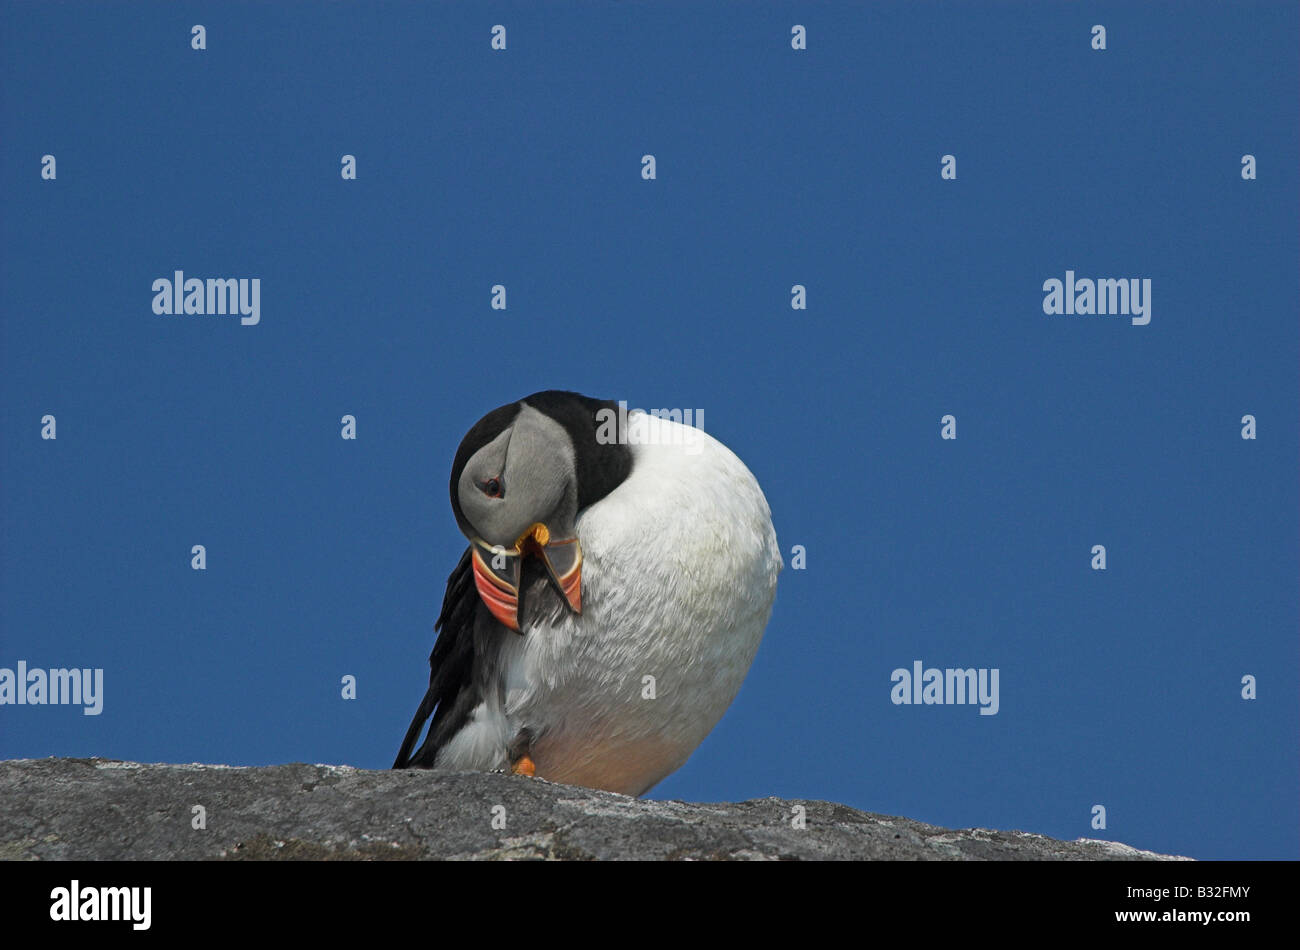 A preening Puffin on the island of Mingulay, Outer Hebrides, Scotland. - Stock Image